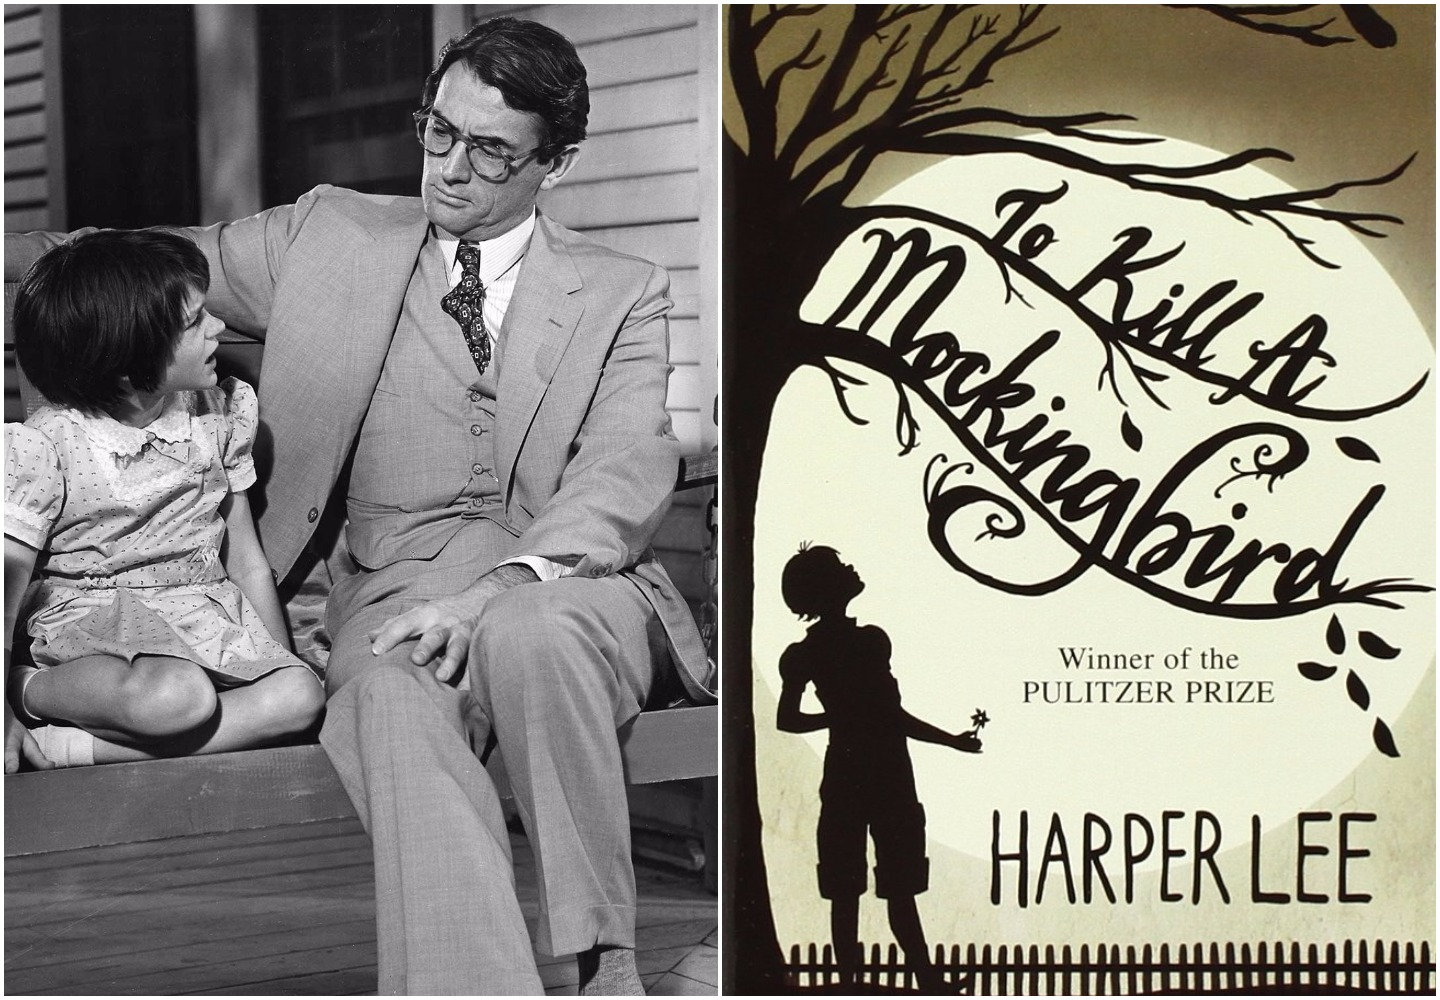 an analysis of a fathers lessons to his child in to kill a mockingbird by harper lee To kill a mockingbird is a book written by harper lee the  analysis atticus is  rarely very stern with his children here, with his strong words,.